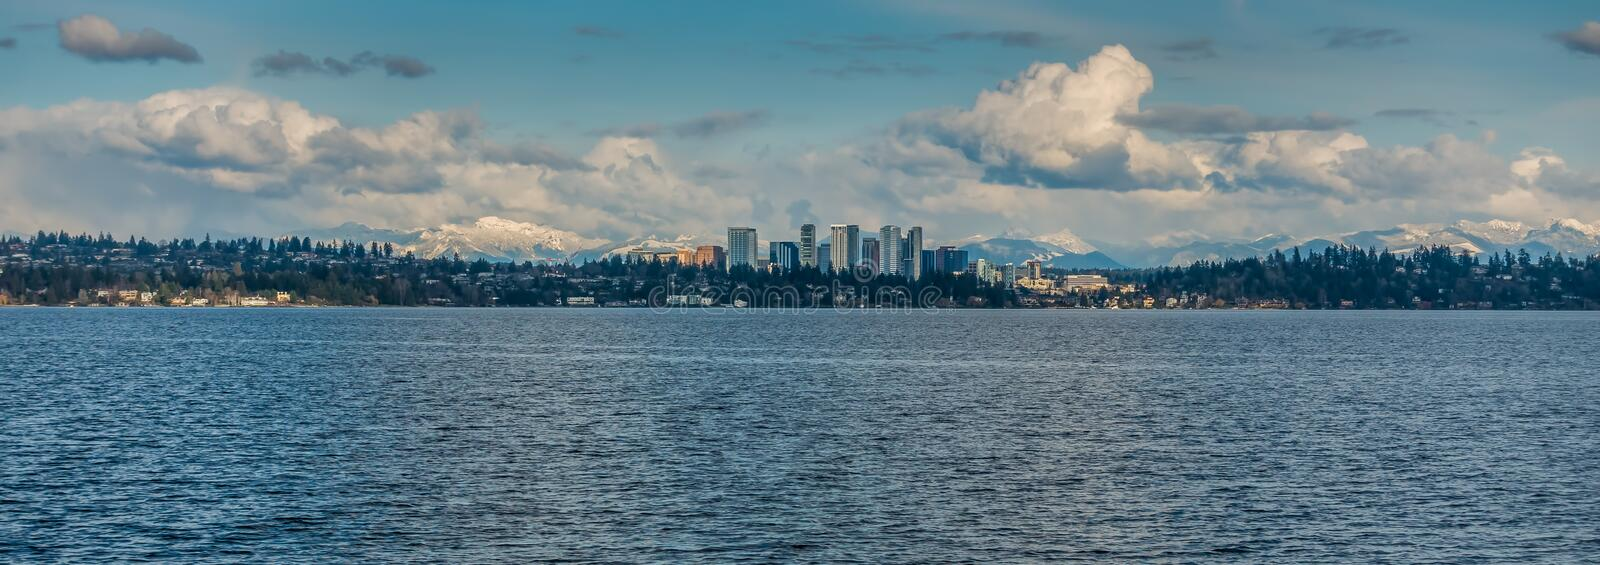 Bellevue Skyline and Cascades Panorama 5. Panorama shot of the skyline of Bellevue, Washington with the Cascade Mountains behind stock images